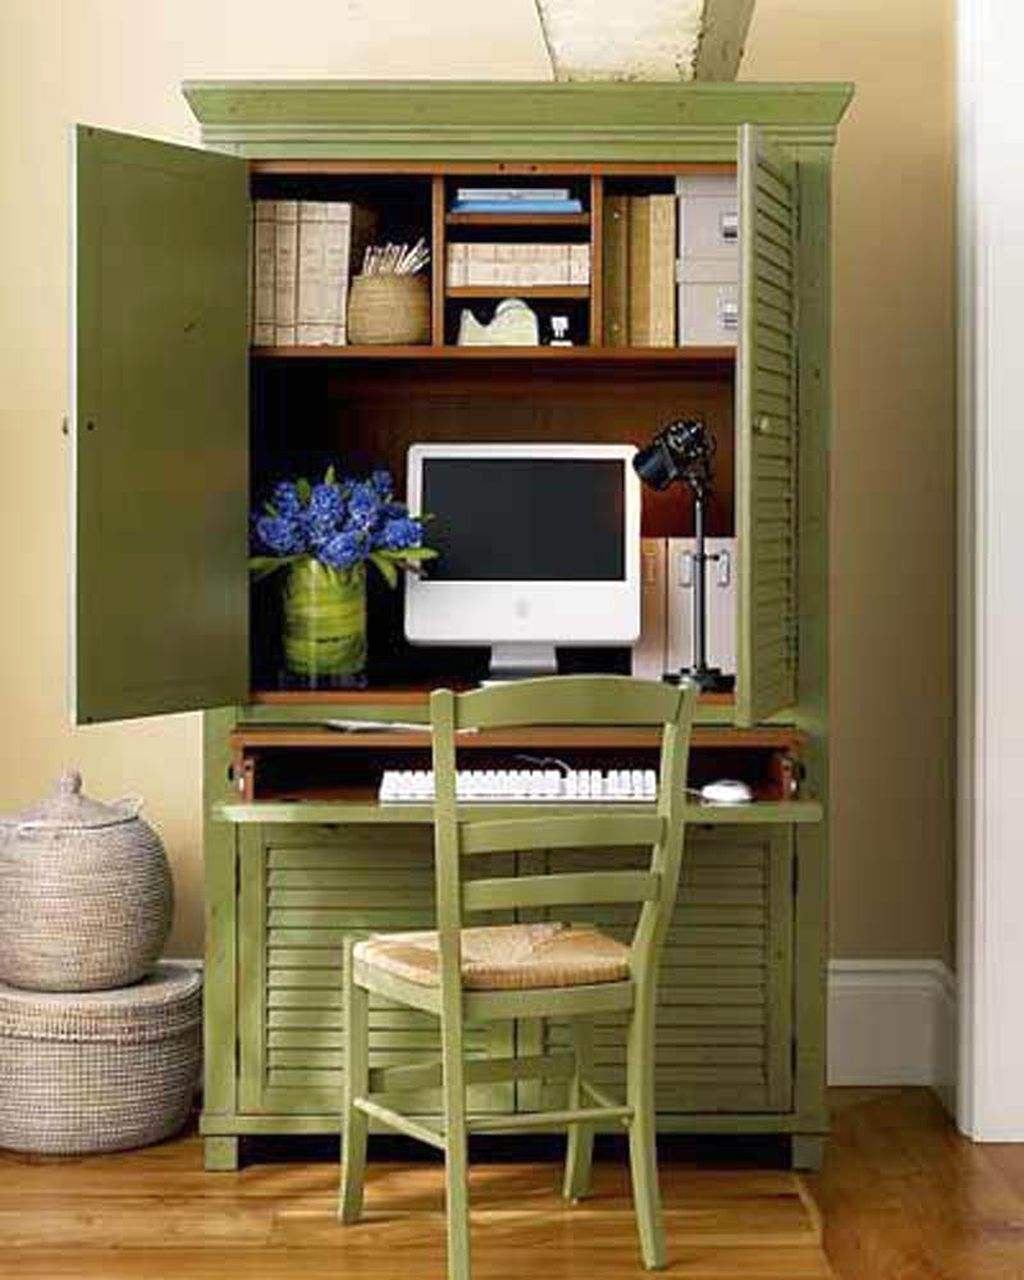 Green cupboard home office design ideas for small spaces for Home office space design ideas